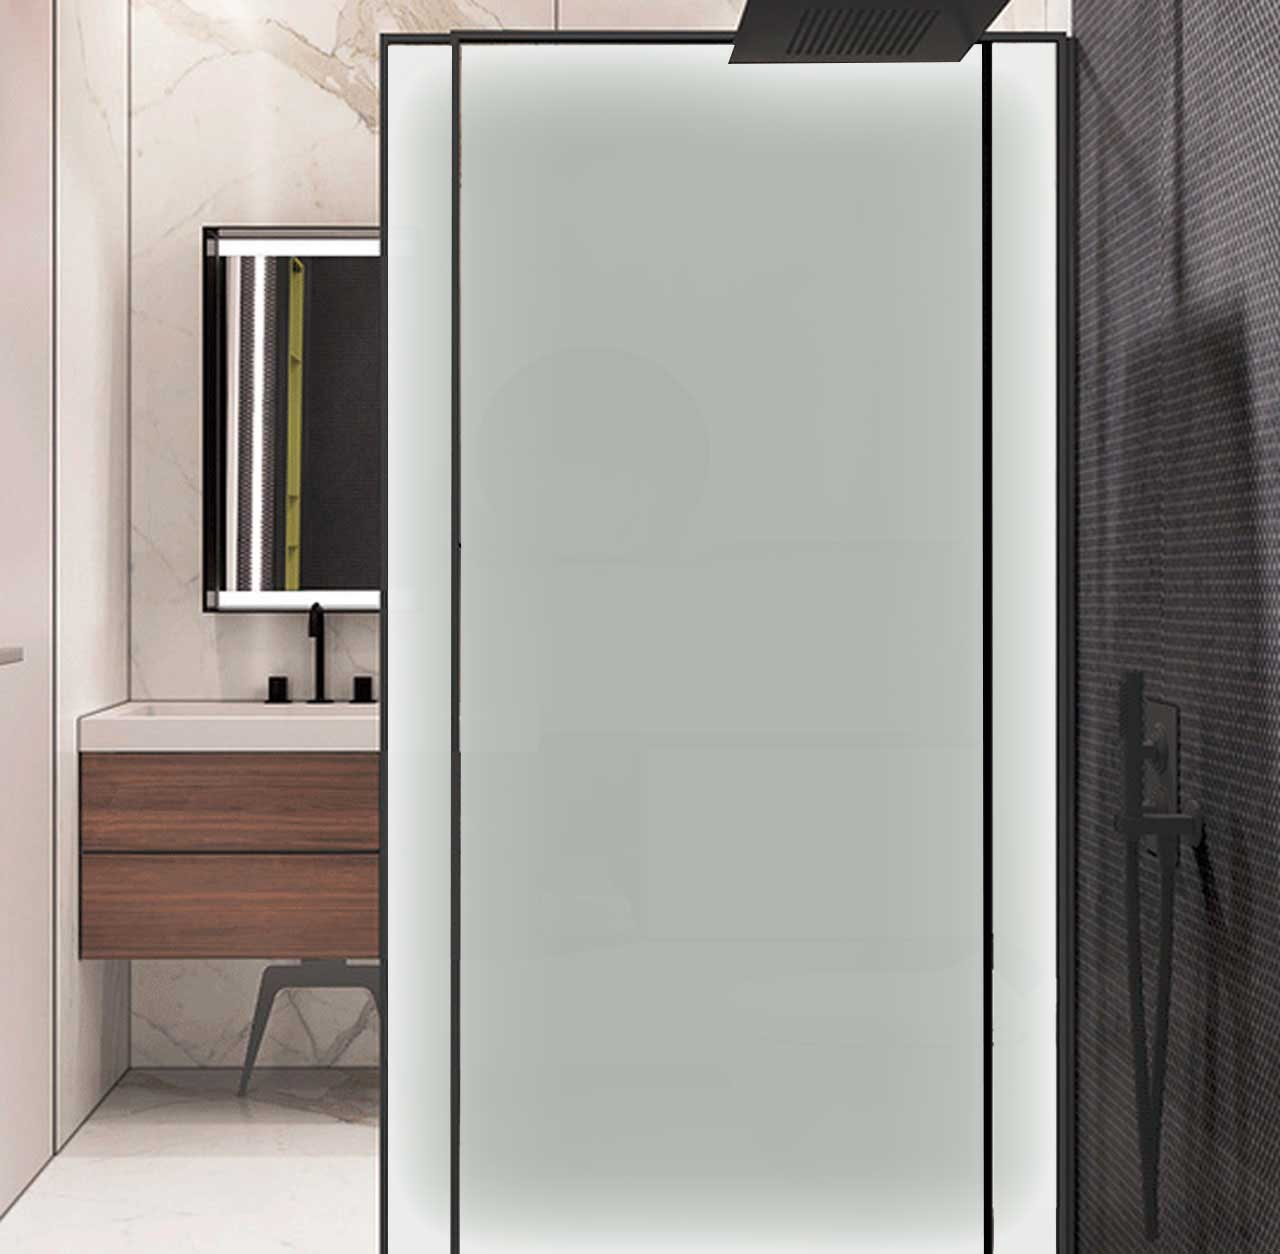 Shower Door with Privacy Glass Window